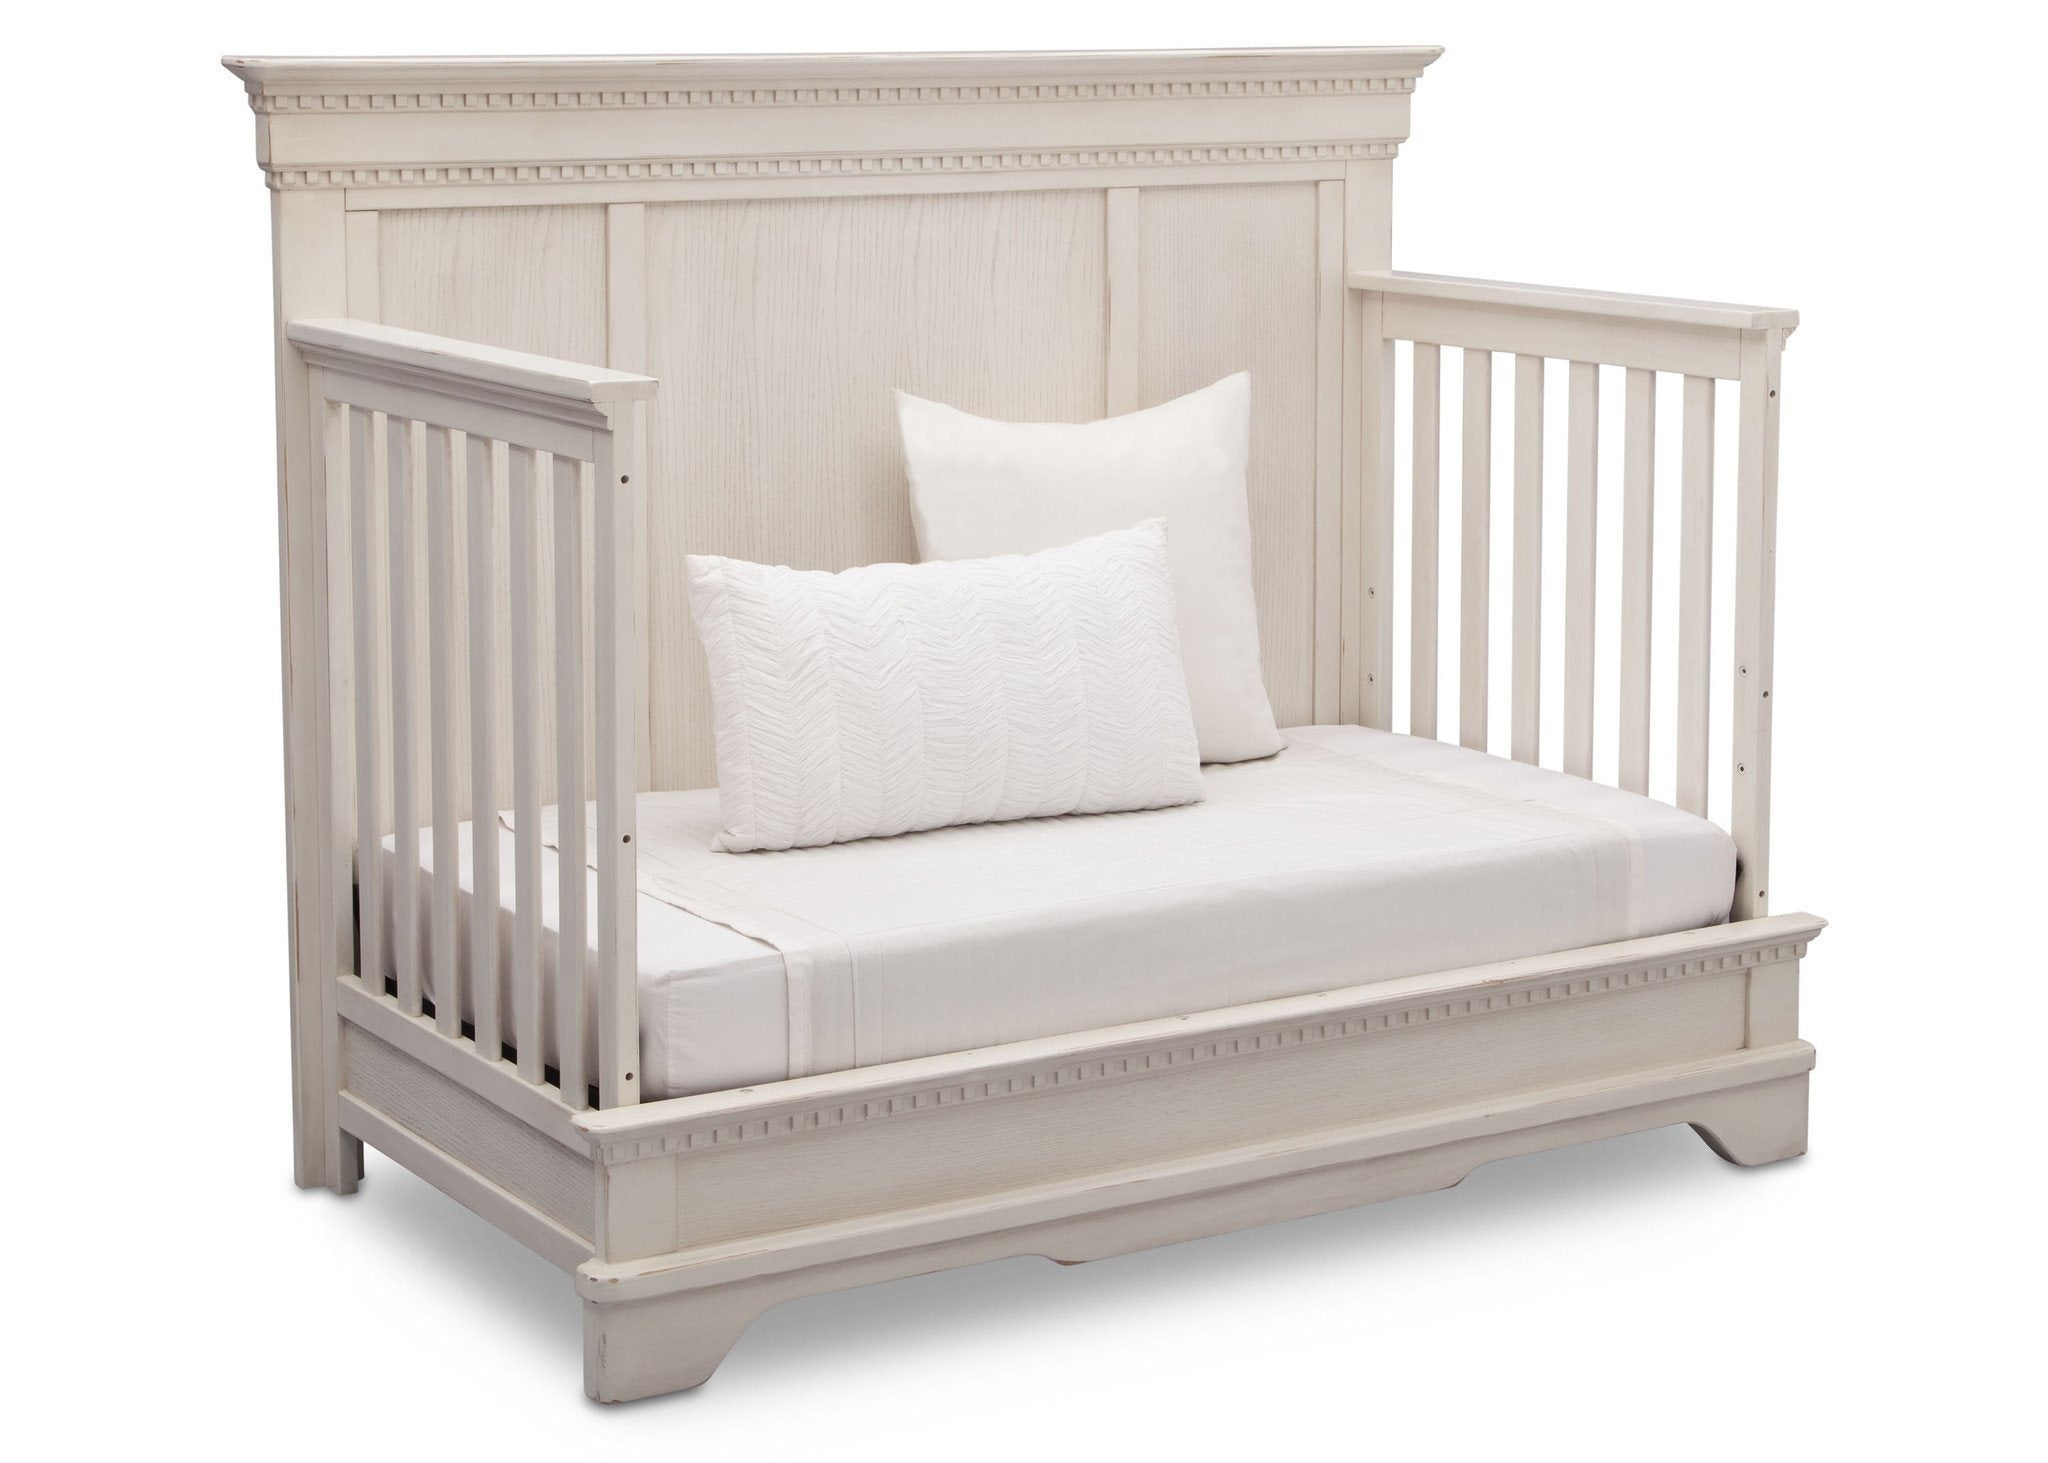 Simmons Kids Antique White (122) Tivoli Crib 'N' More, Angled Conversion to DayBed View, b5b